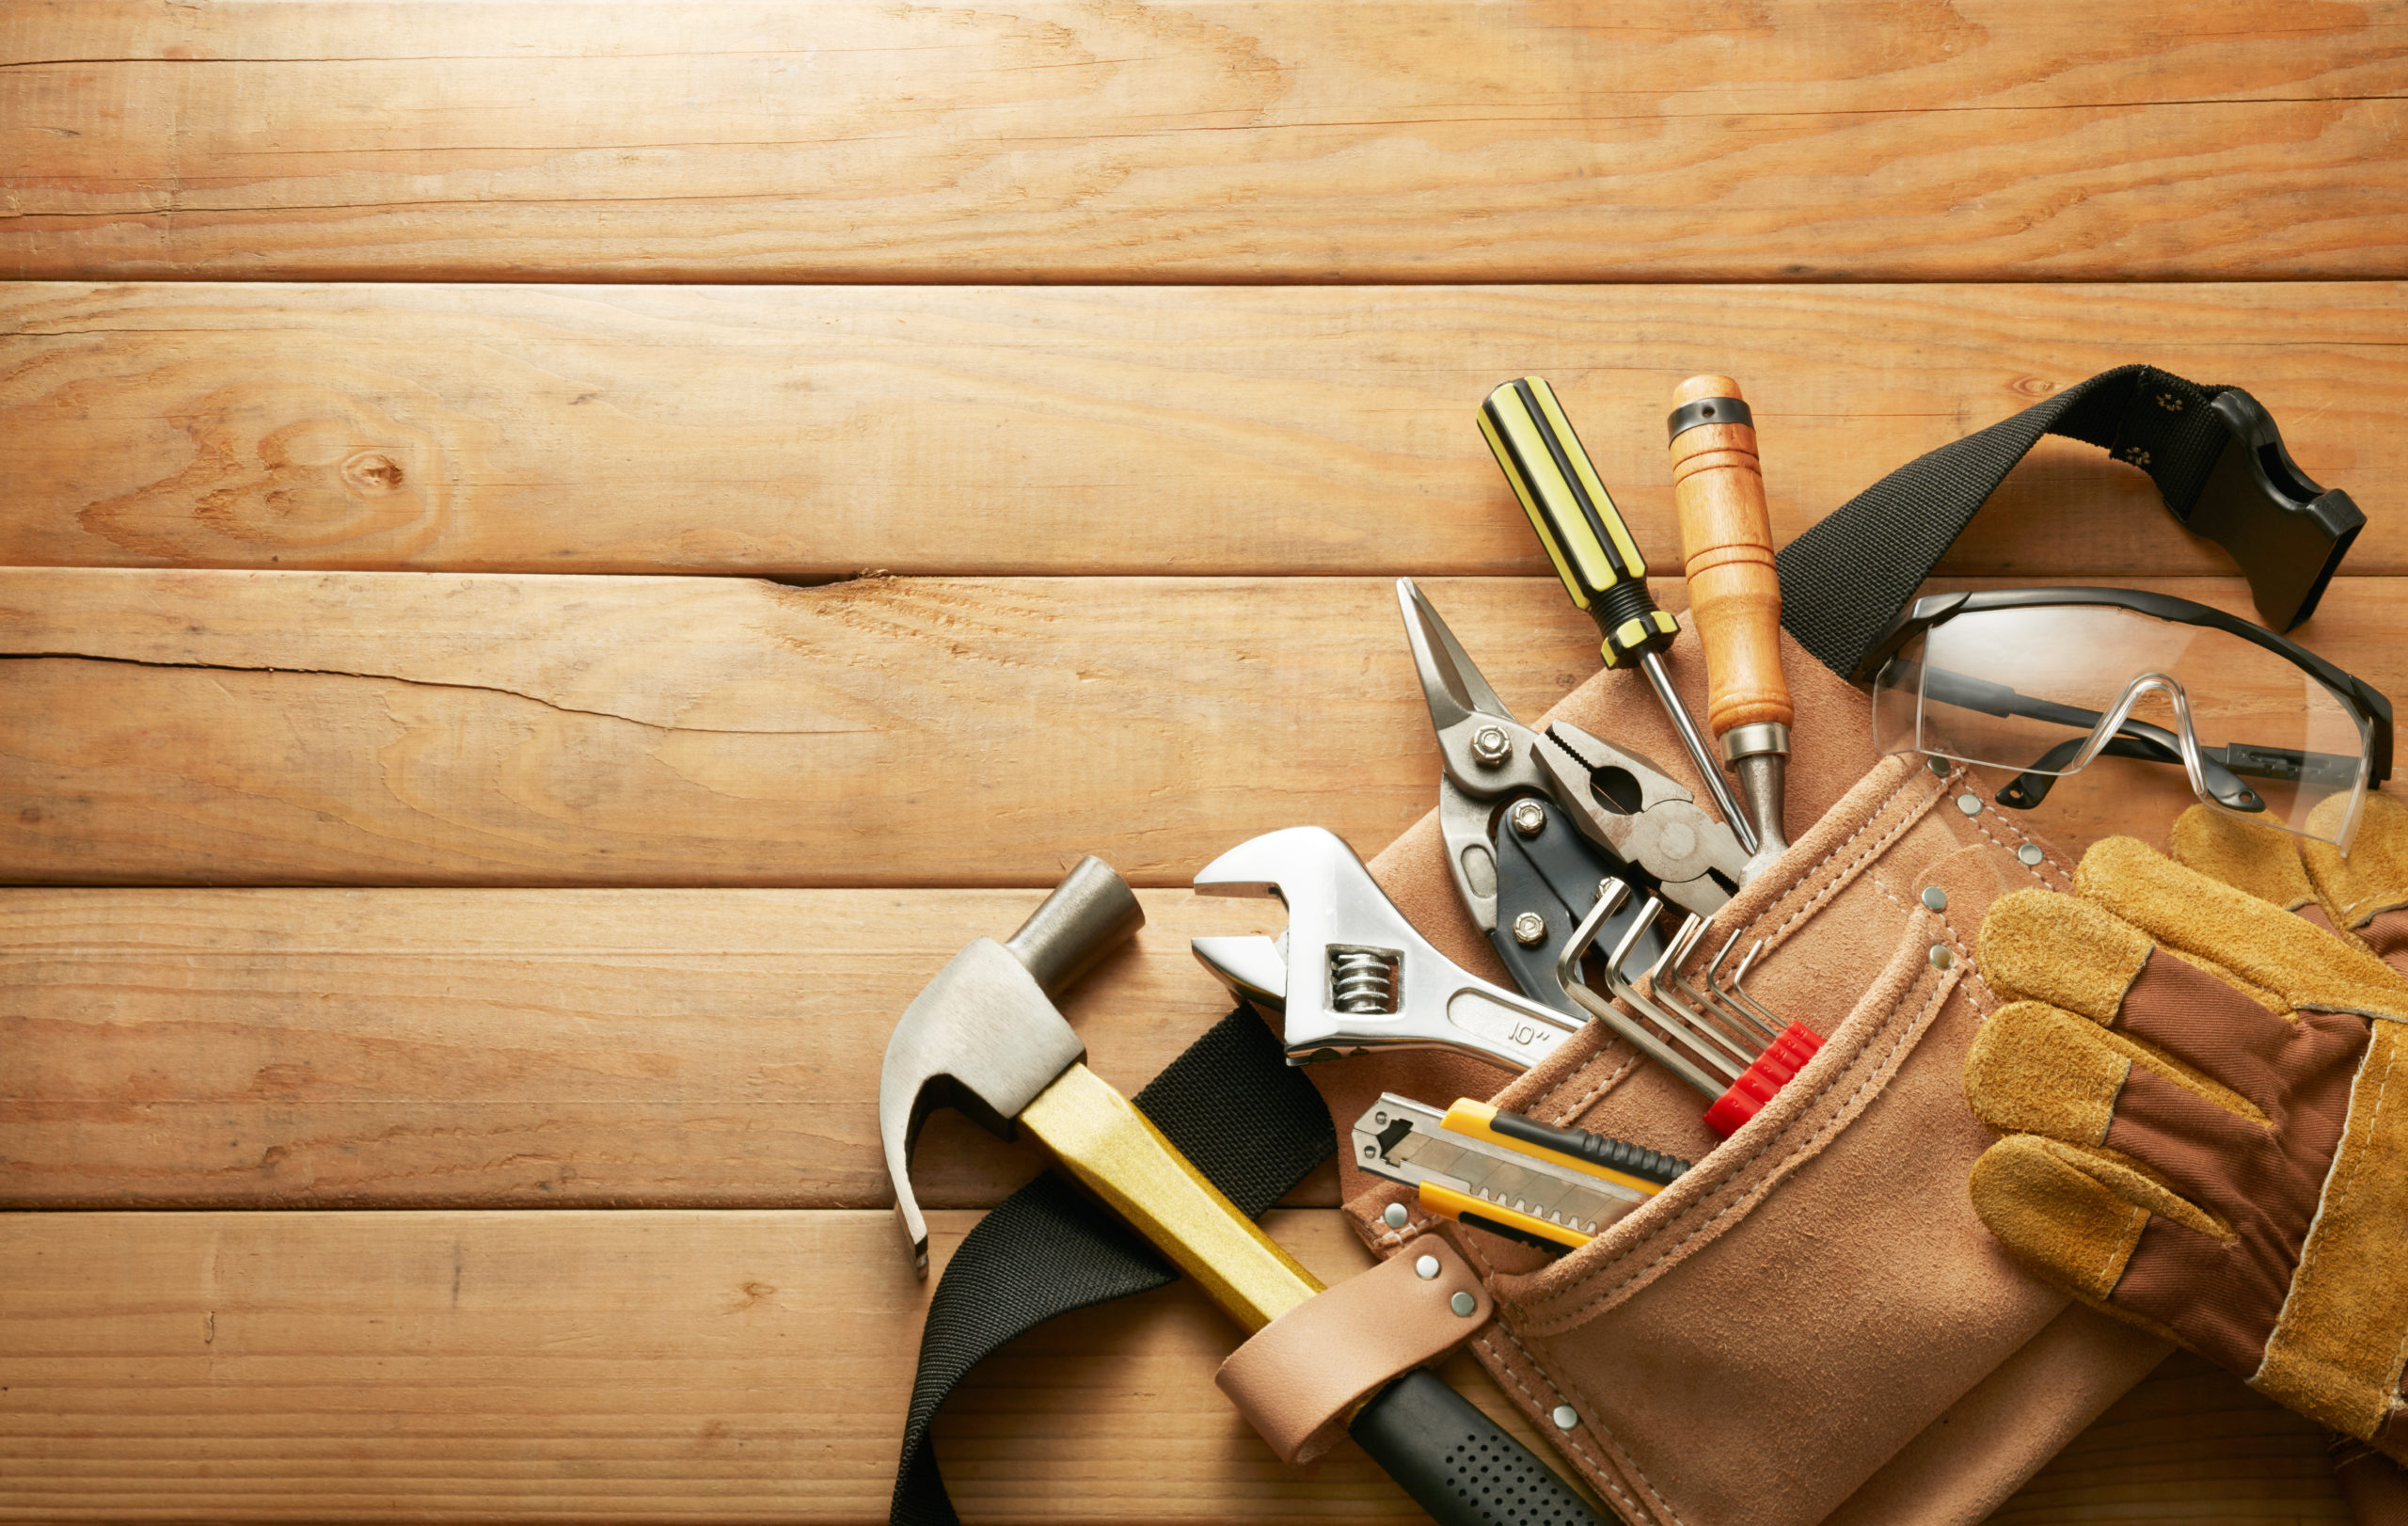 tools in tool belt